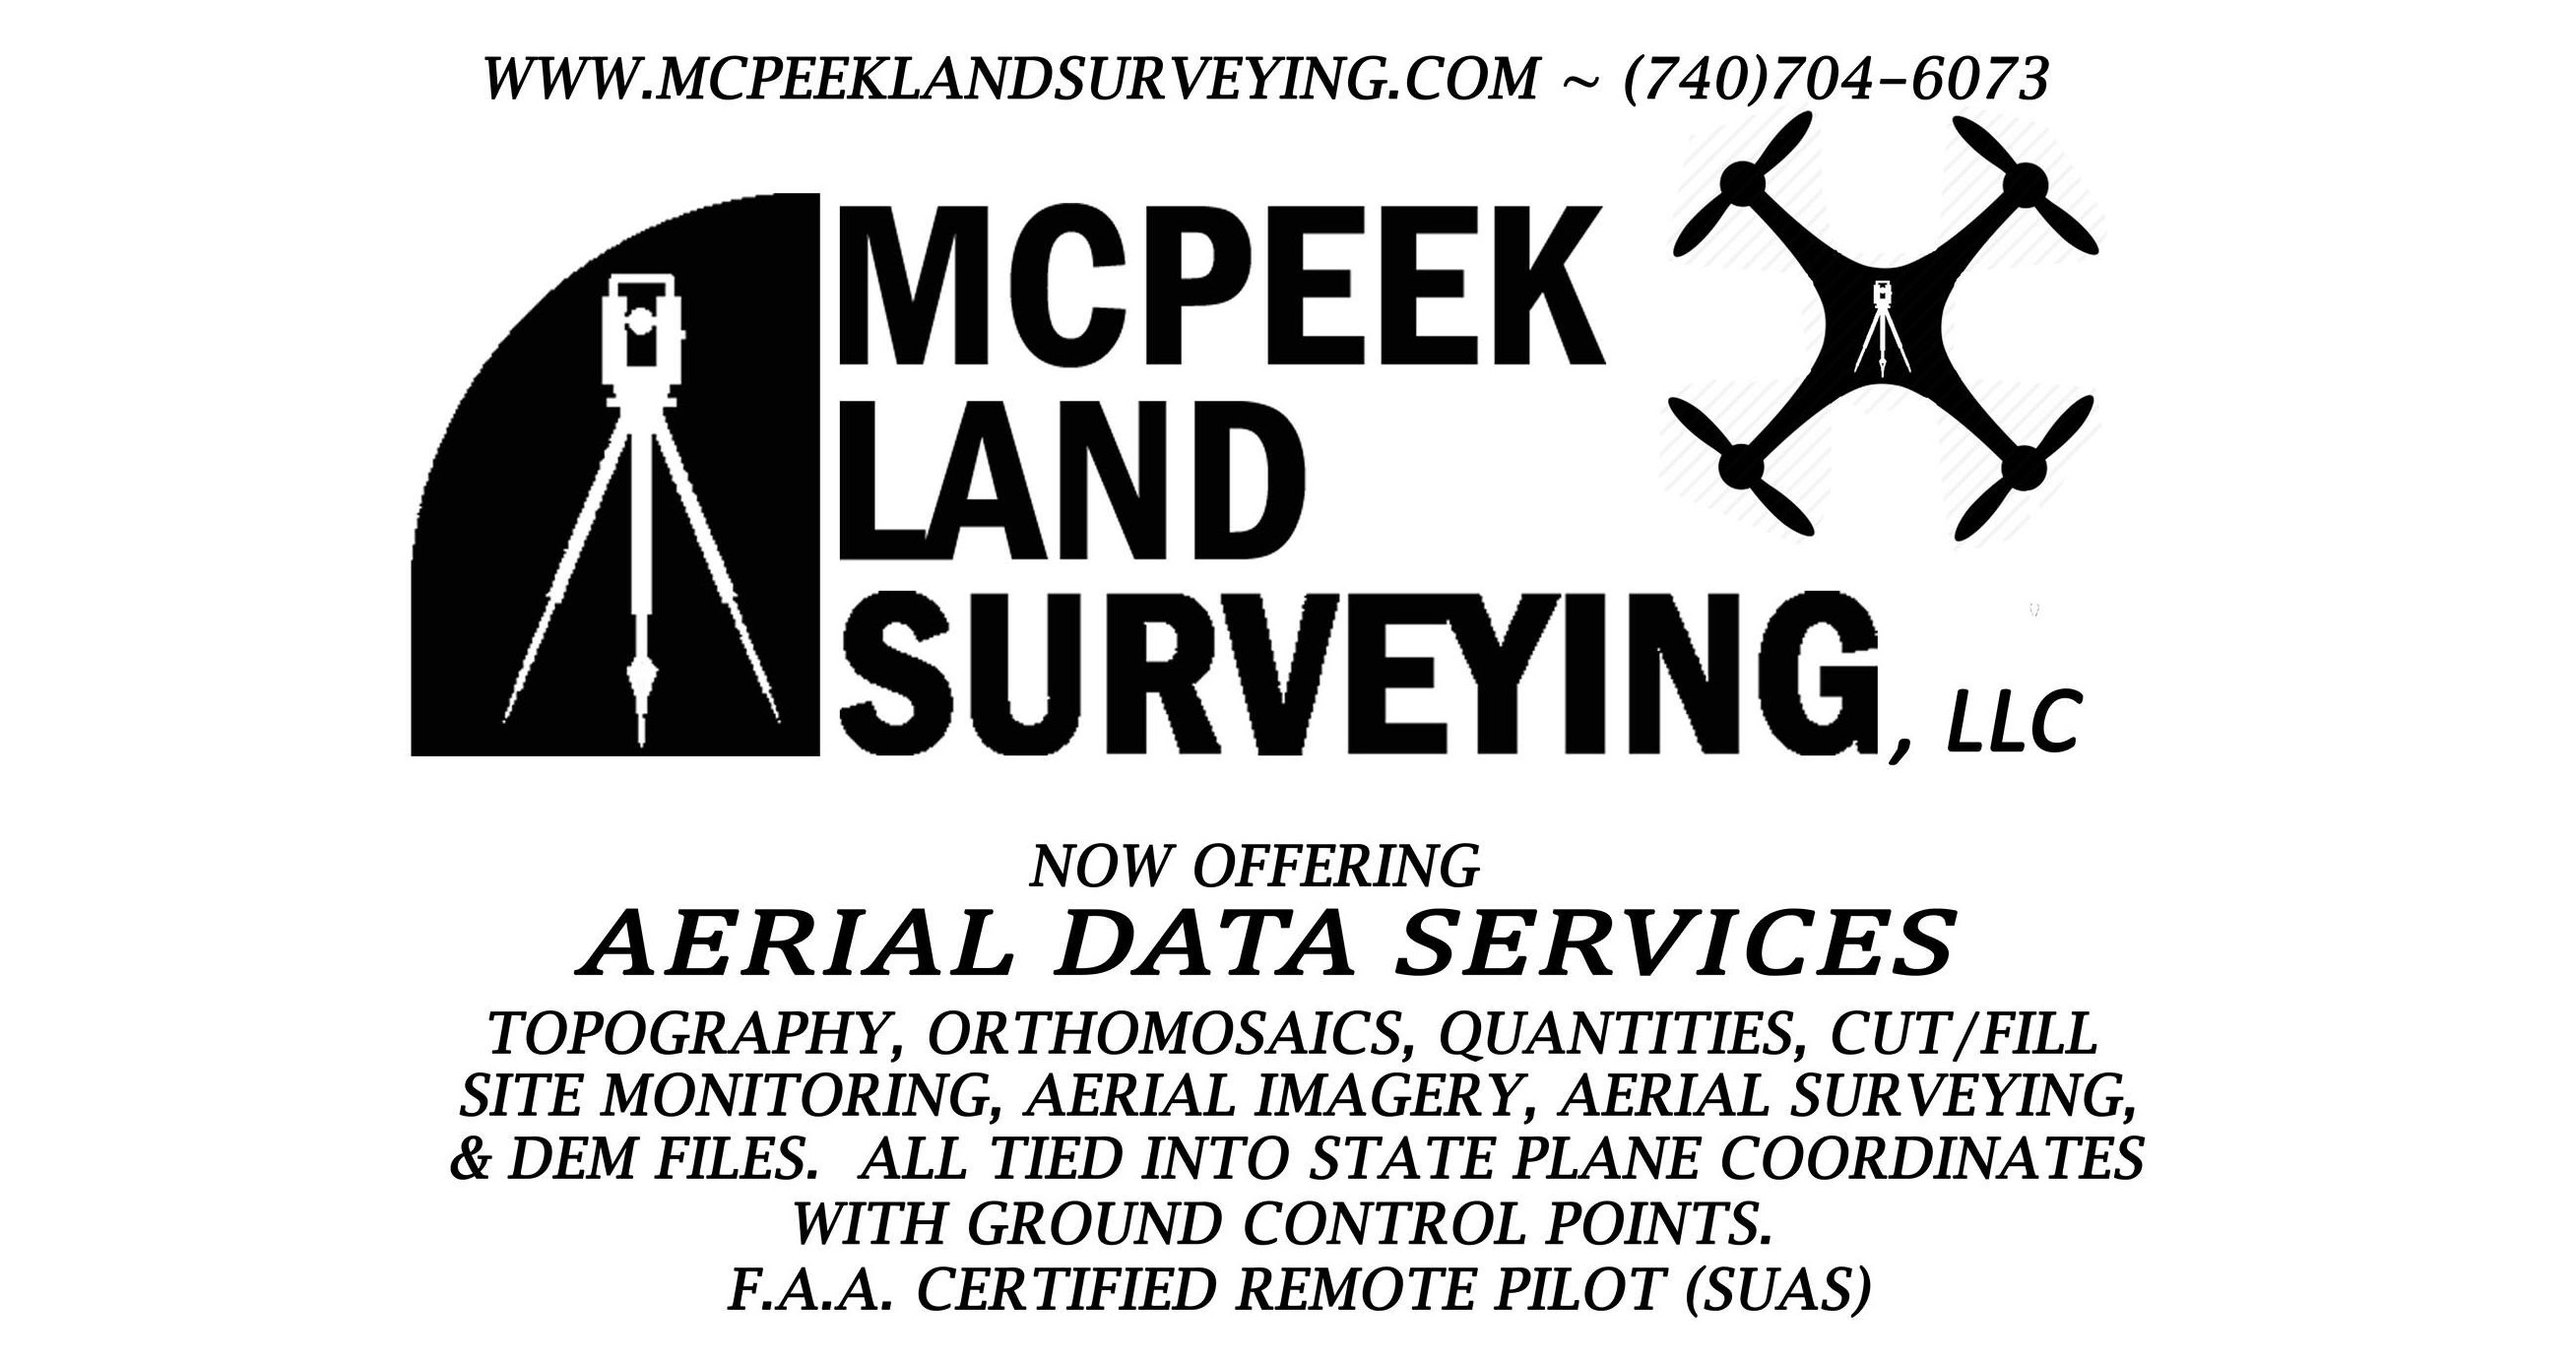 Aerial Data Services